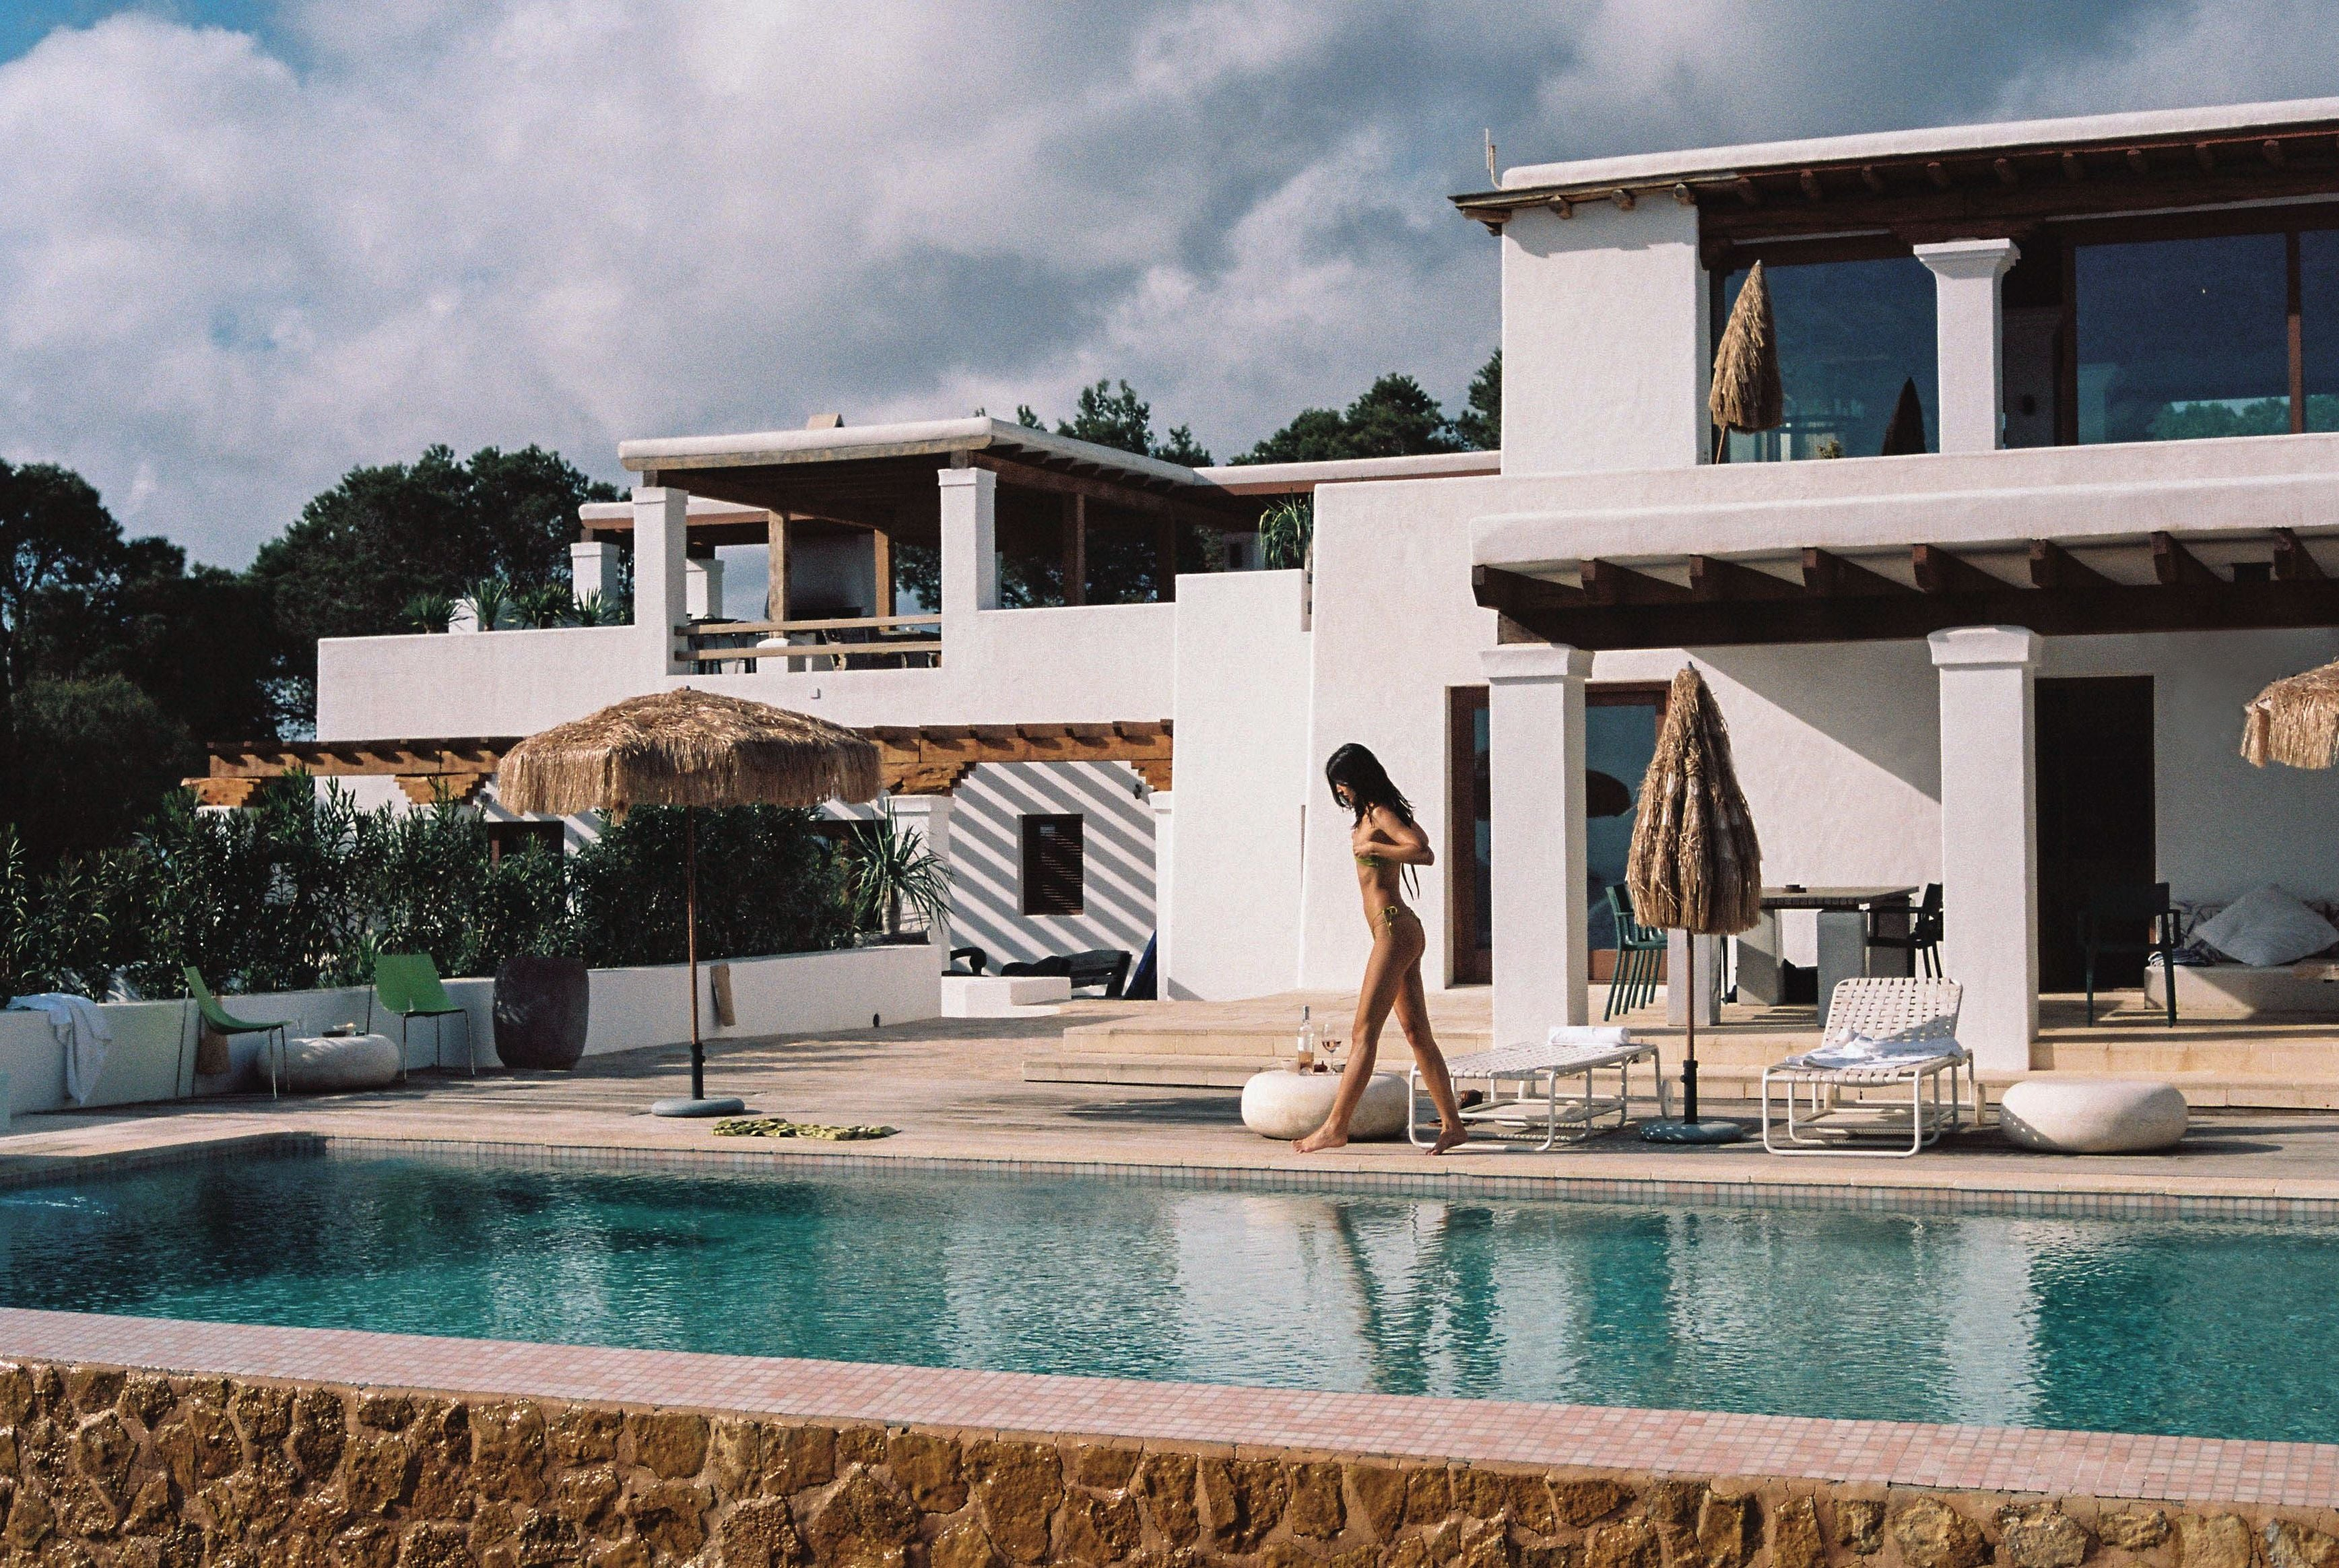 Sommer Swim campaign by the pool at secluded Harissa Villa in Ibiza